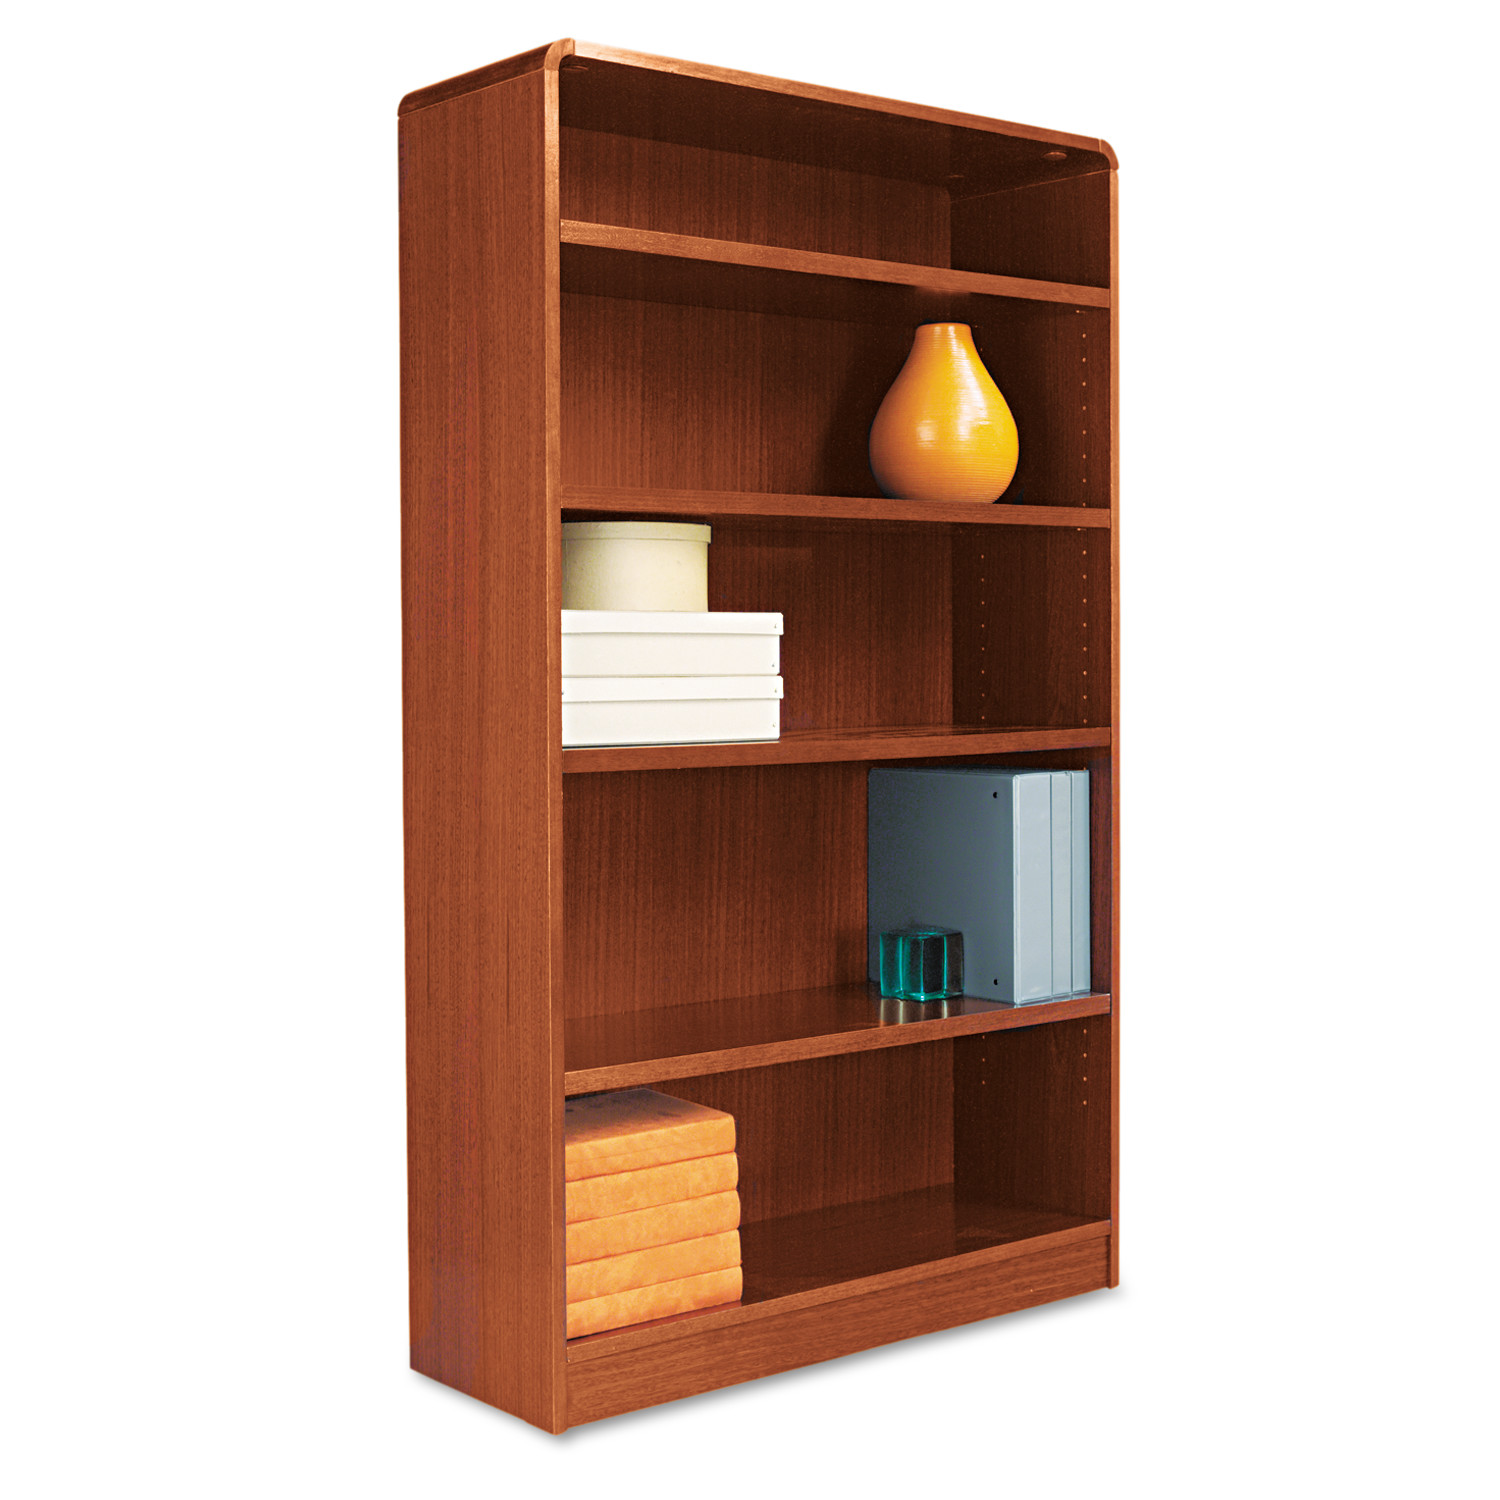 Alera Radius Corner Wood Bookcase, Five-Shelf, 35-5/8w x 11-3/4d x 60h, Medium Cherry